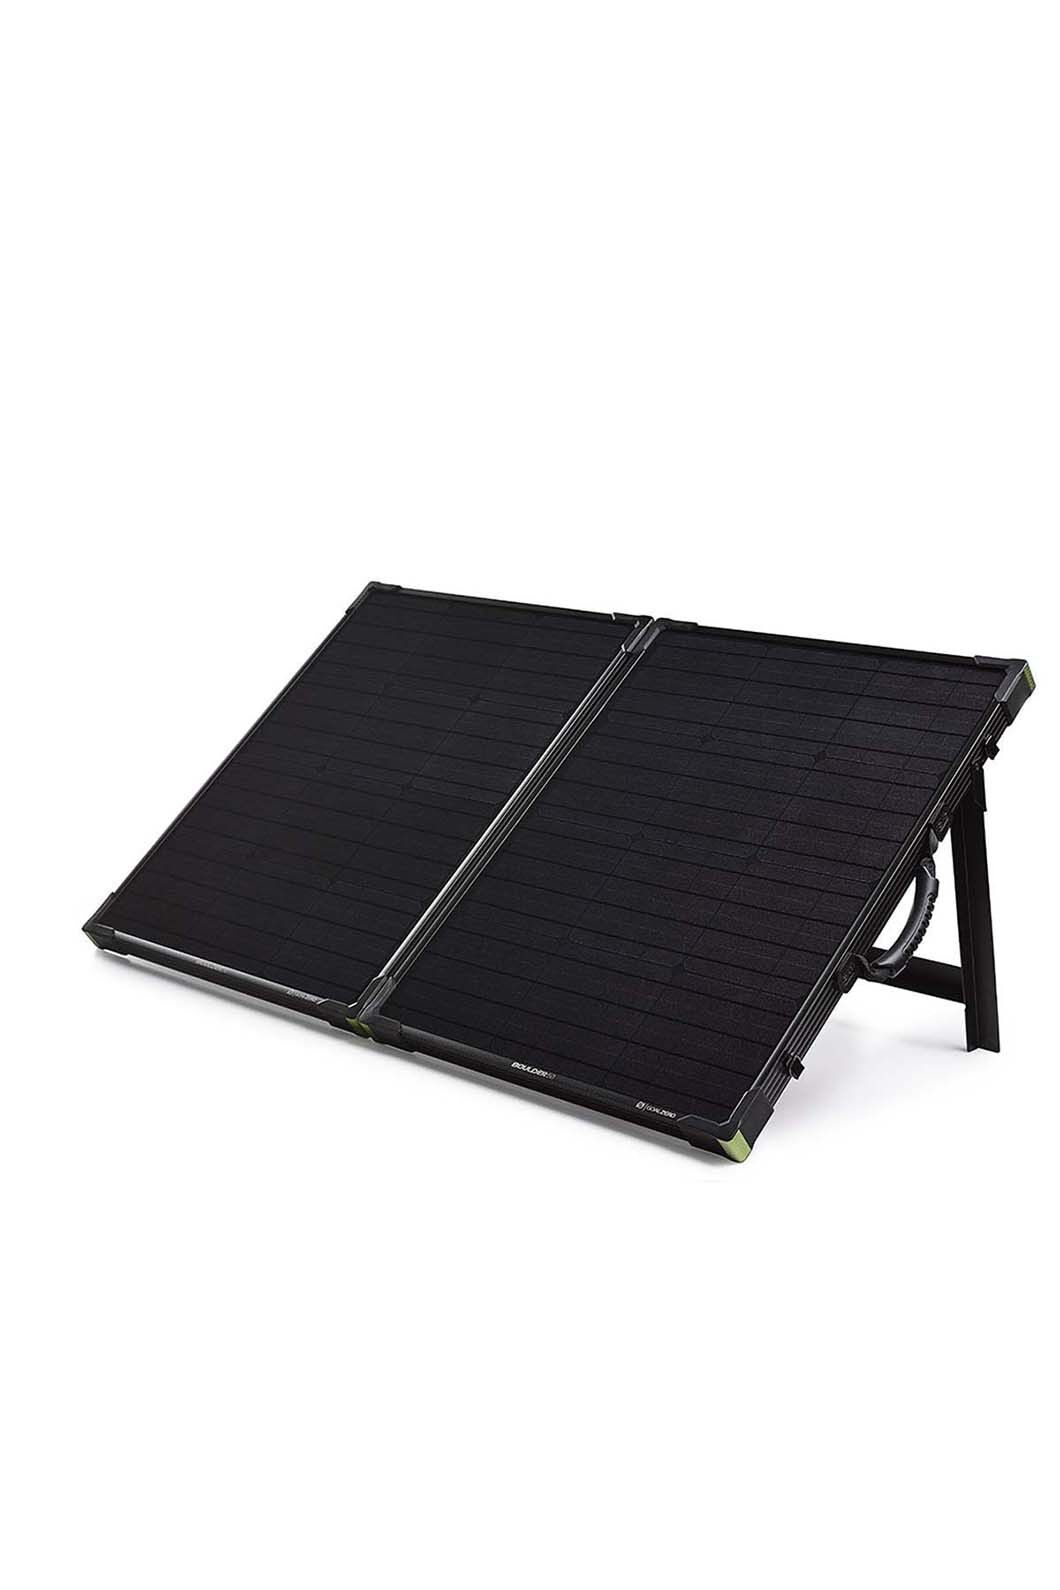 Goal Zero Boulder 100 Briefcase Solar Panel, None, hi-res